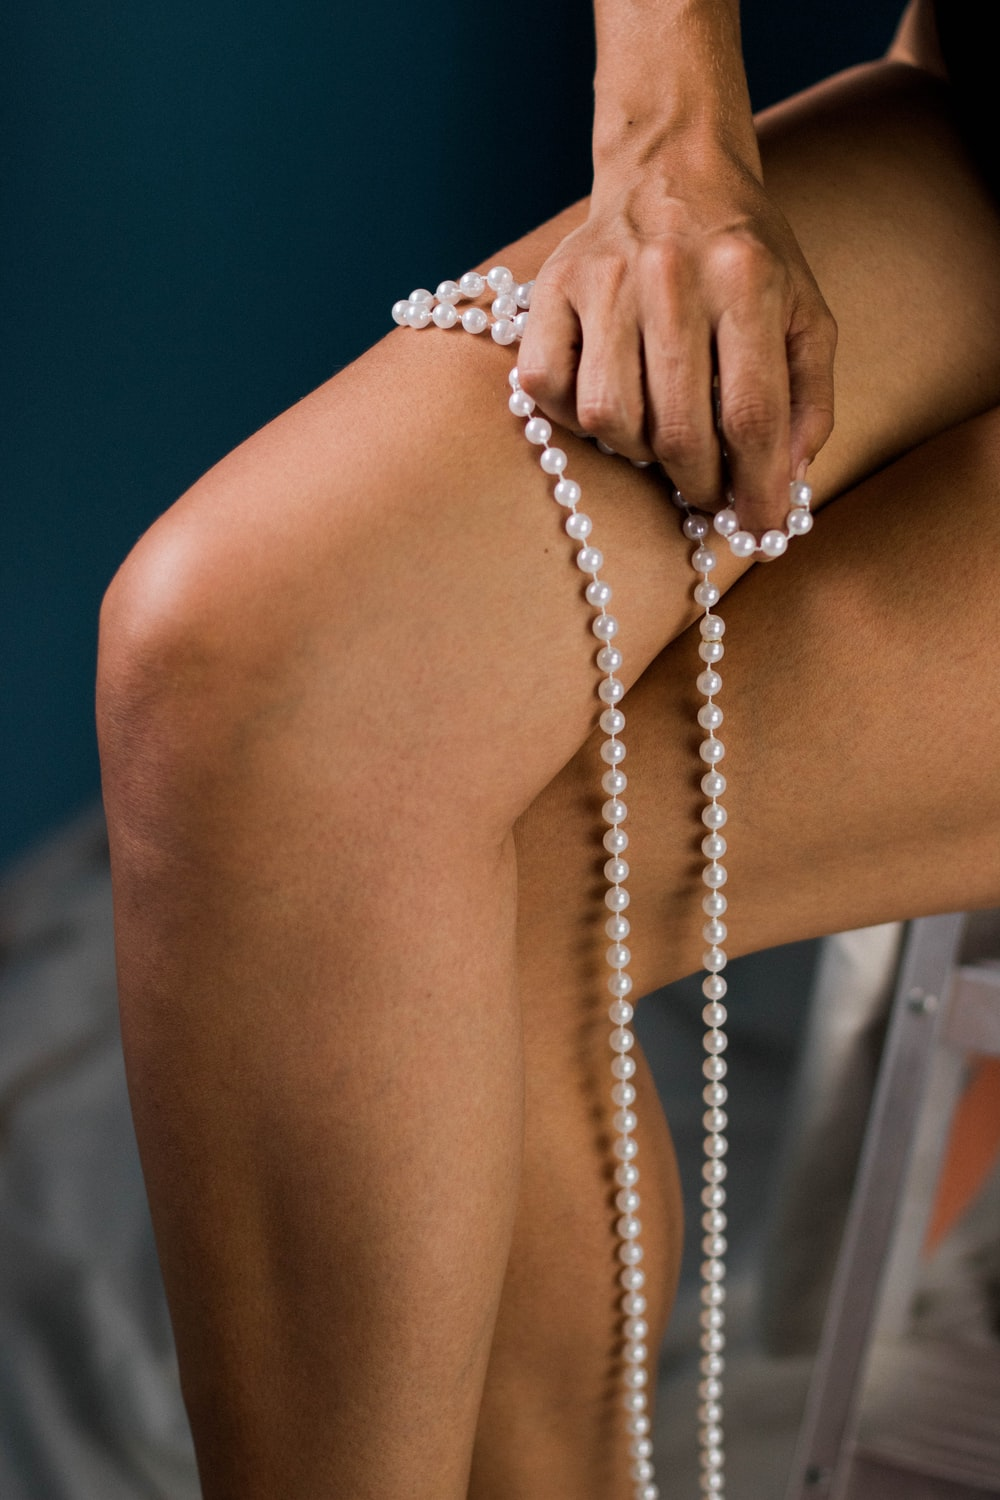 shallow focus photo of person holding white jewelry